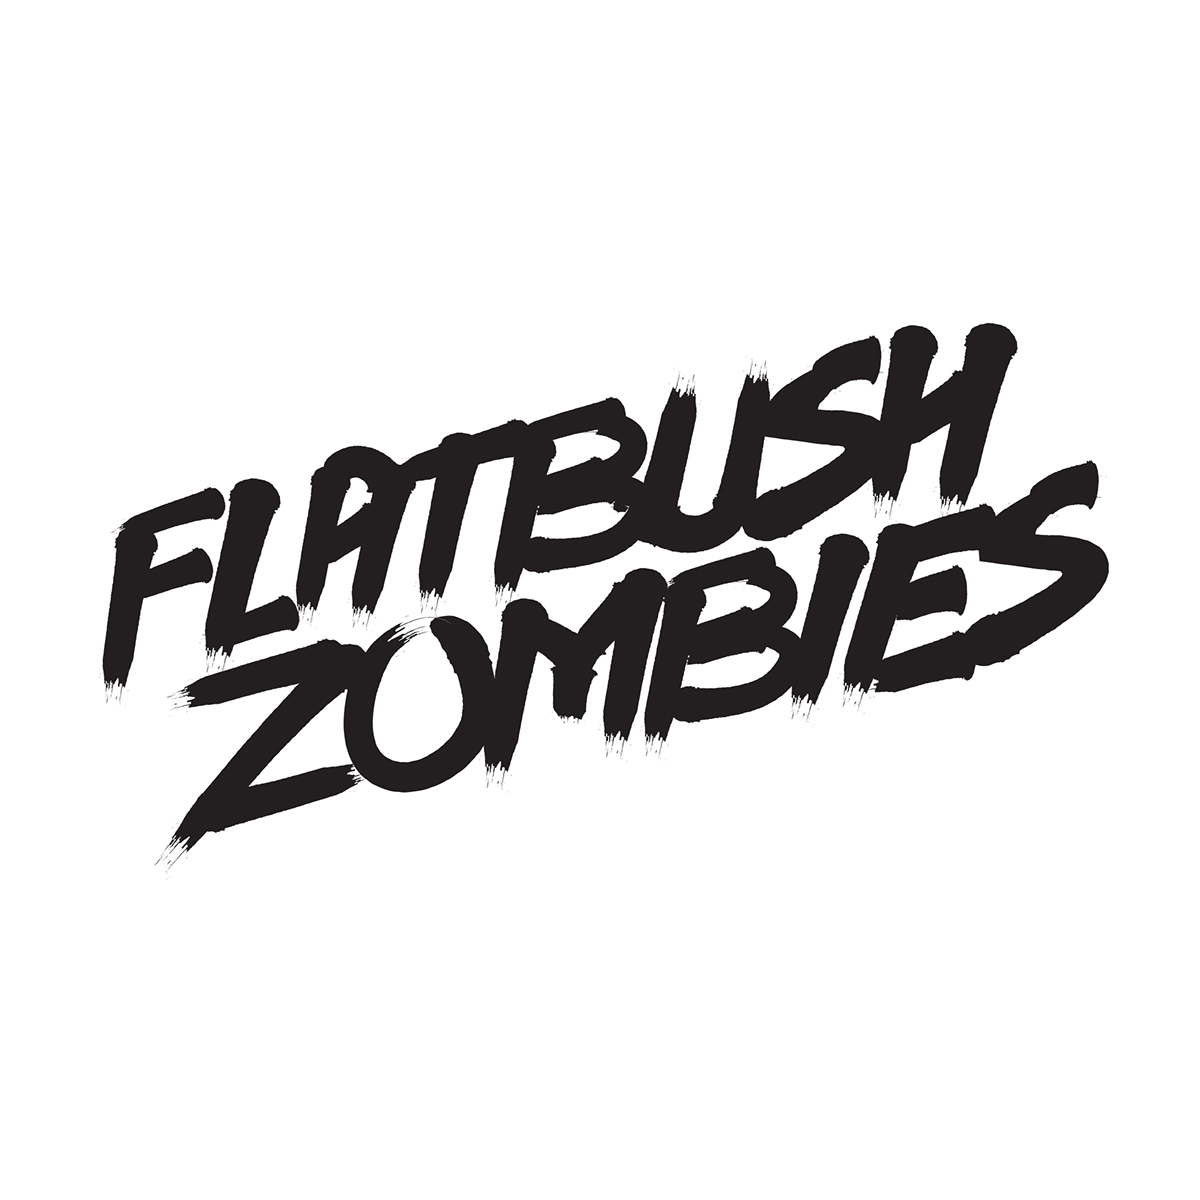 Flatbush Zombies On Behance